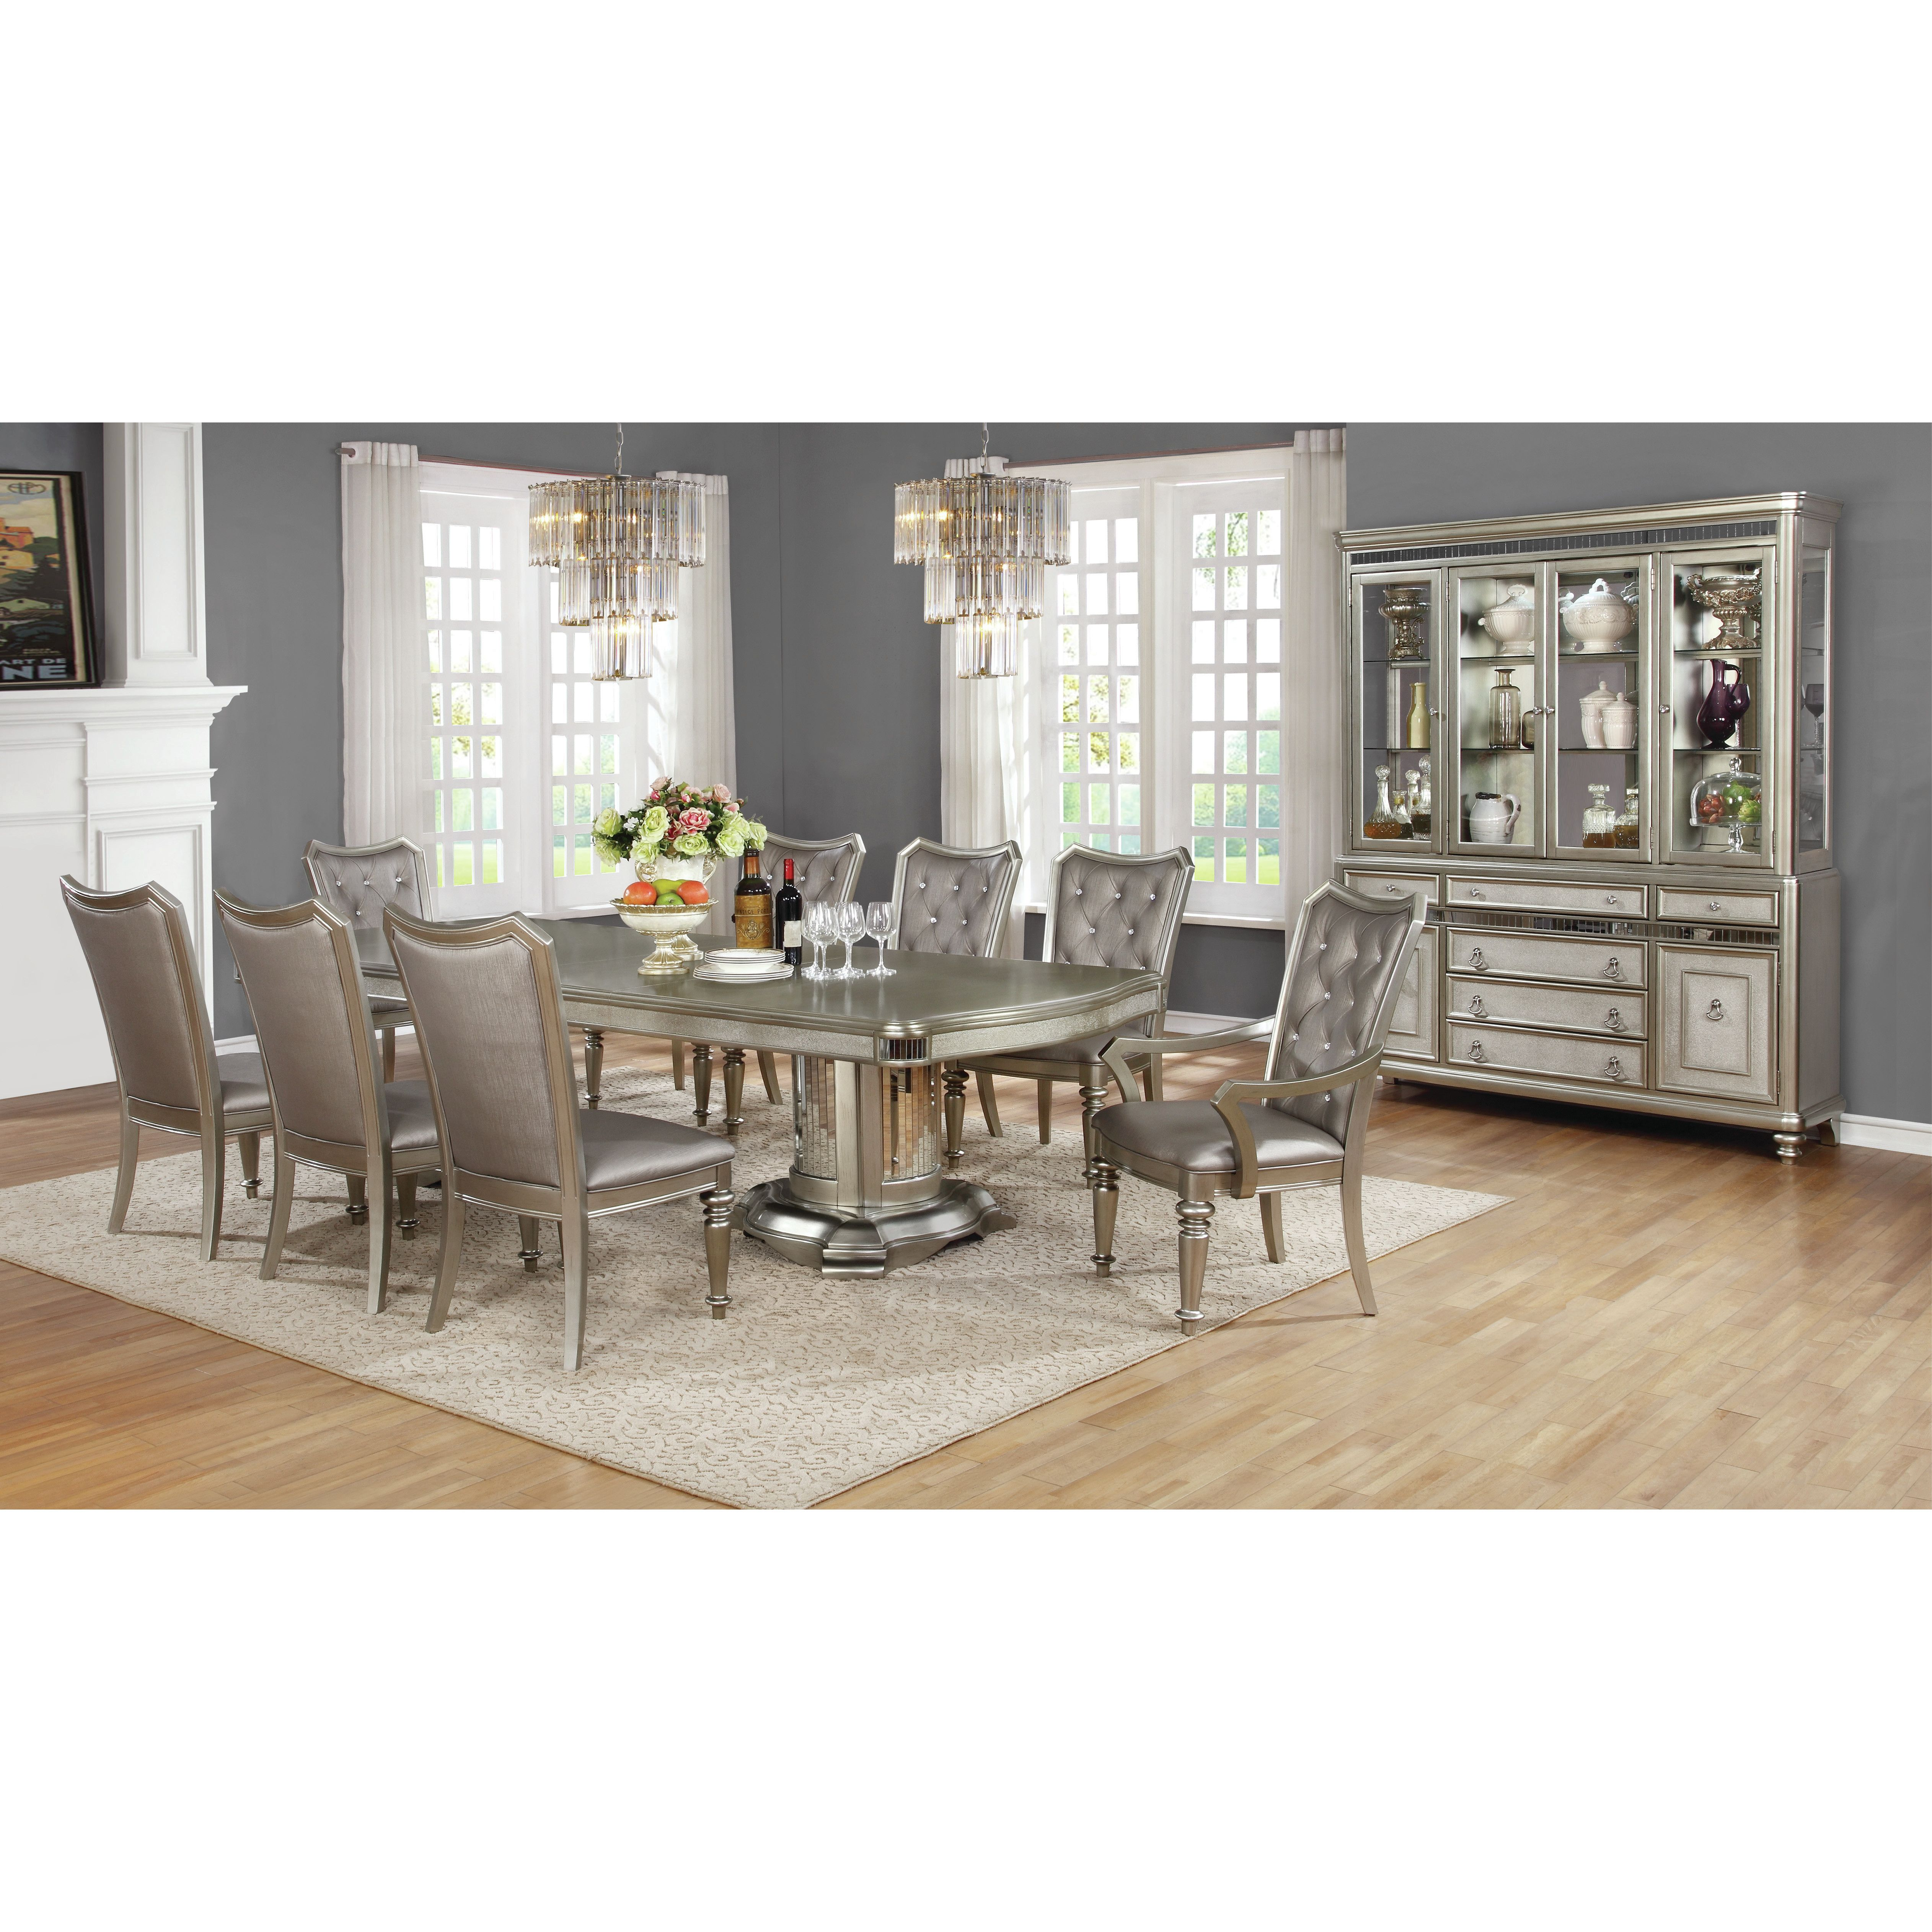 Astoria grand barrowman extendable dining table wayfair for the